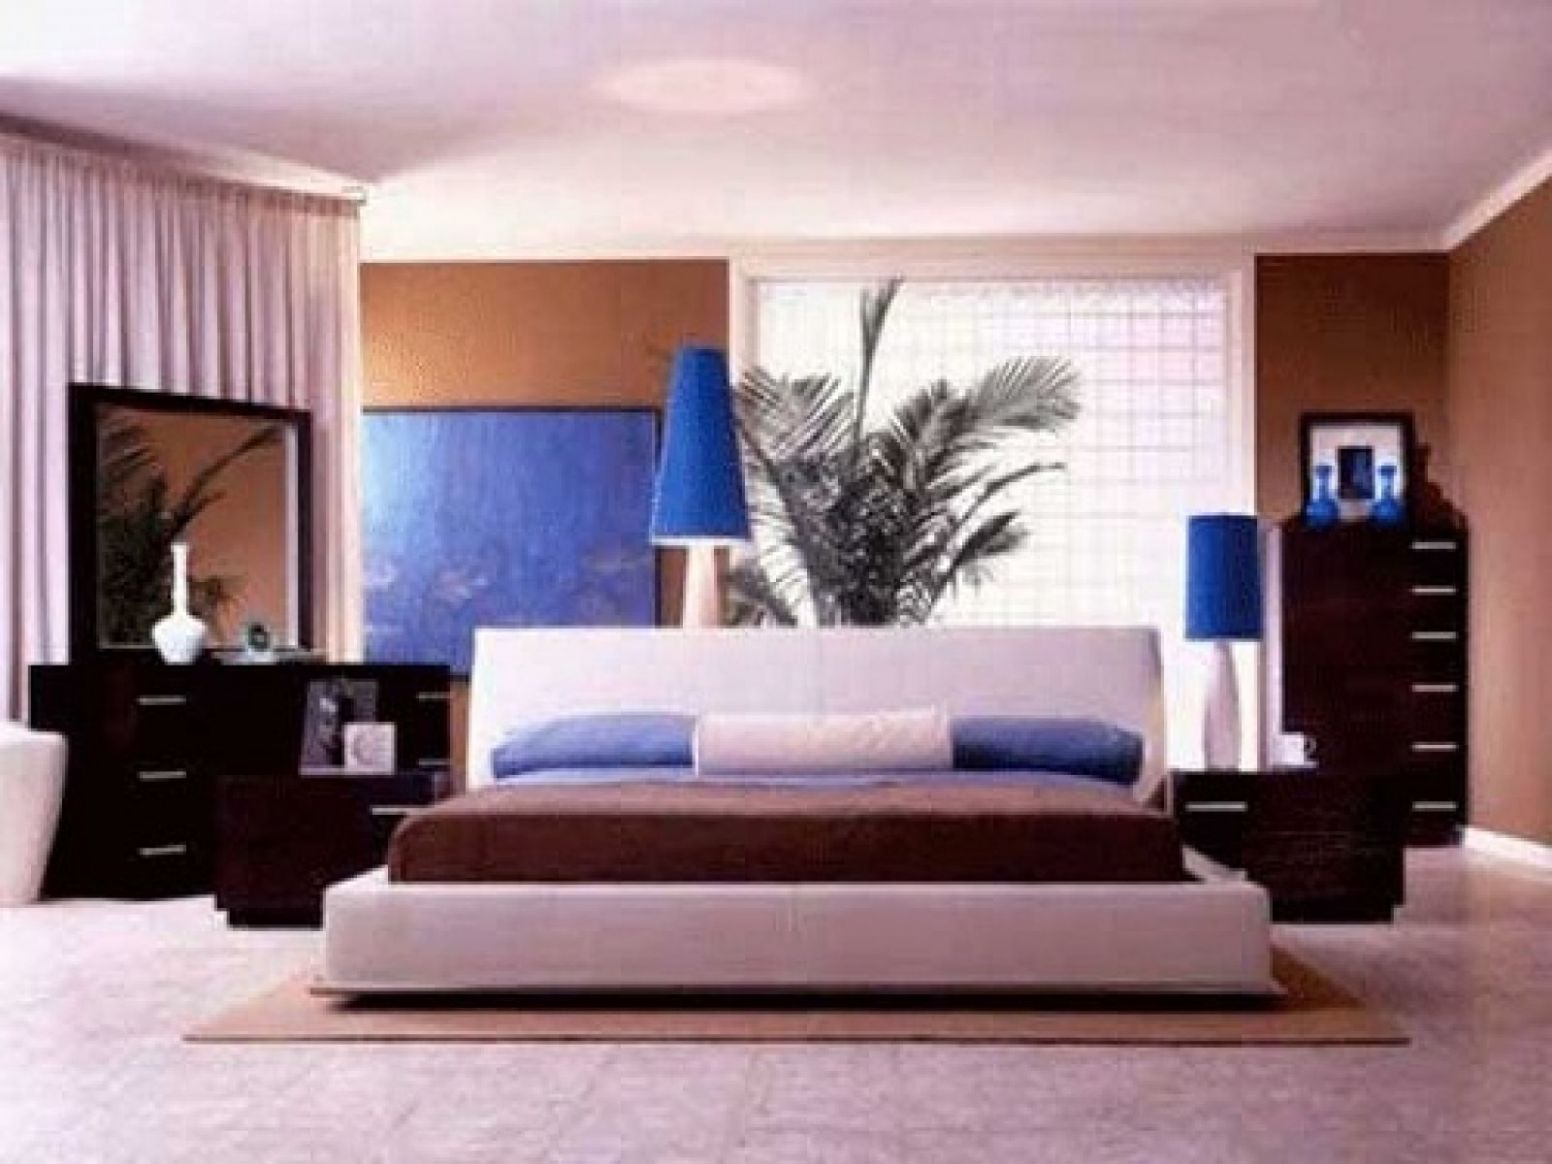 zen bedroom ideas on a budget (With images) | Bedroom furniture ..